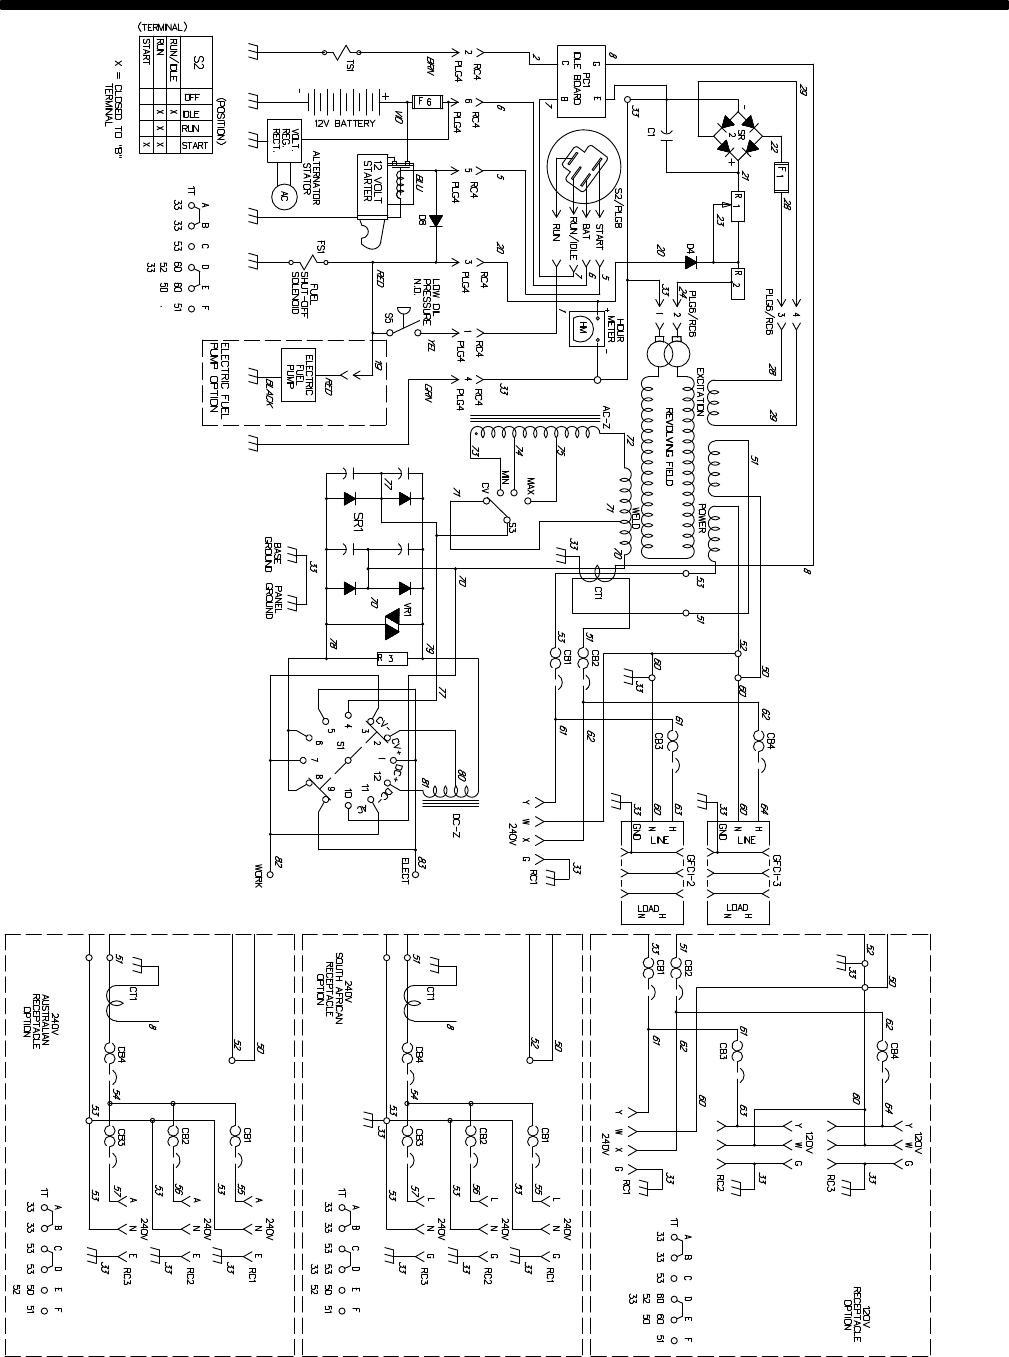 Miller Bobcat 250 Wiring Diagram in addition Auto Meter Voltmeter Gauge Electrical Jeep Logo 8717 Yj Tj Jk Manu Install besides Automotive Bosch Relay Wiring Diagram in addition Mercury Cougar Fuse Box Diagram Wiring Schemes also Showthread. on one wire alternator diagram schematics